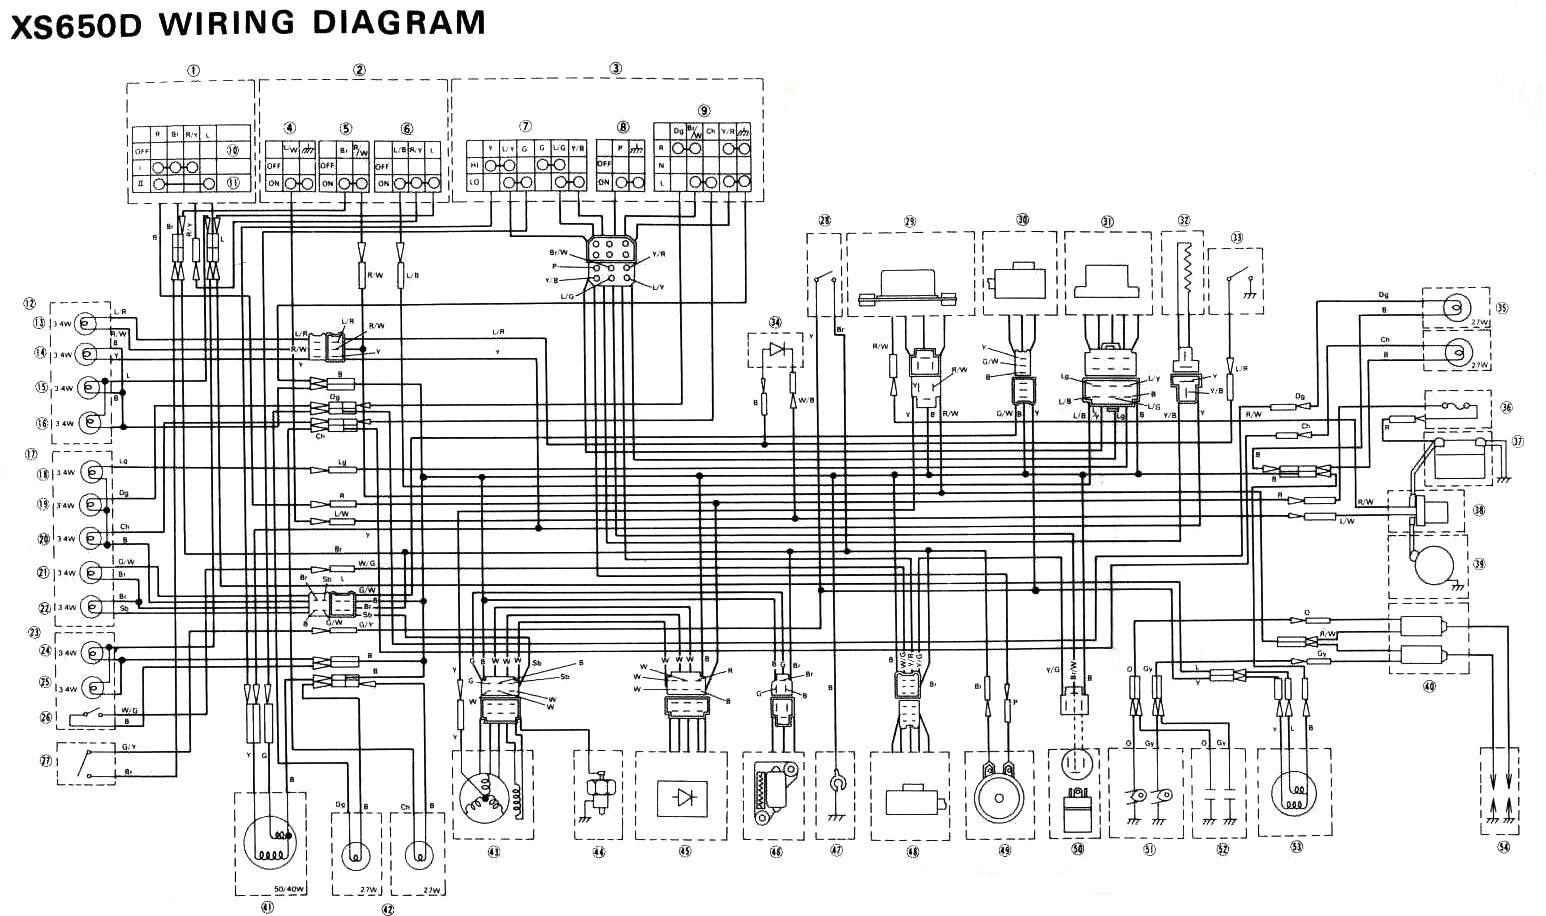 ✦DIAGRAM BASED✦ Yamaha Xs750 Wiring Diagram COMPLETED DIAGRAM BASE Wiring  Diagram - FREDERIC.BENAGLIA.KIDNEYDIAGRAM.PCINFORMI.ITDiagram Based Completed Edition - PcInformi